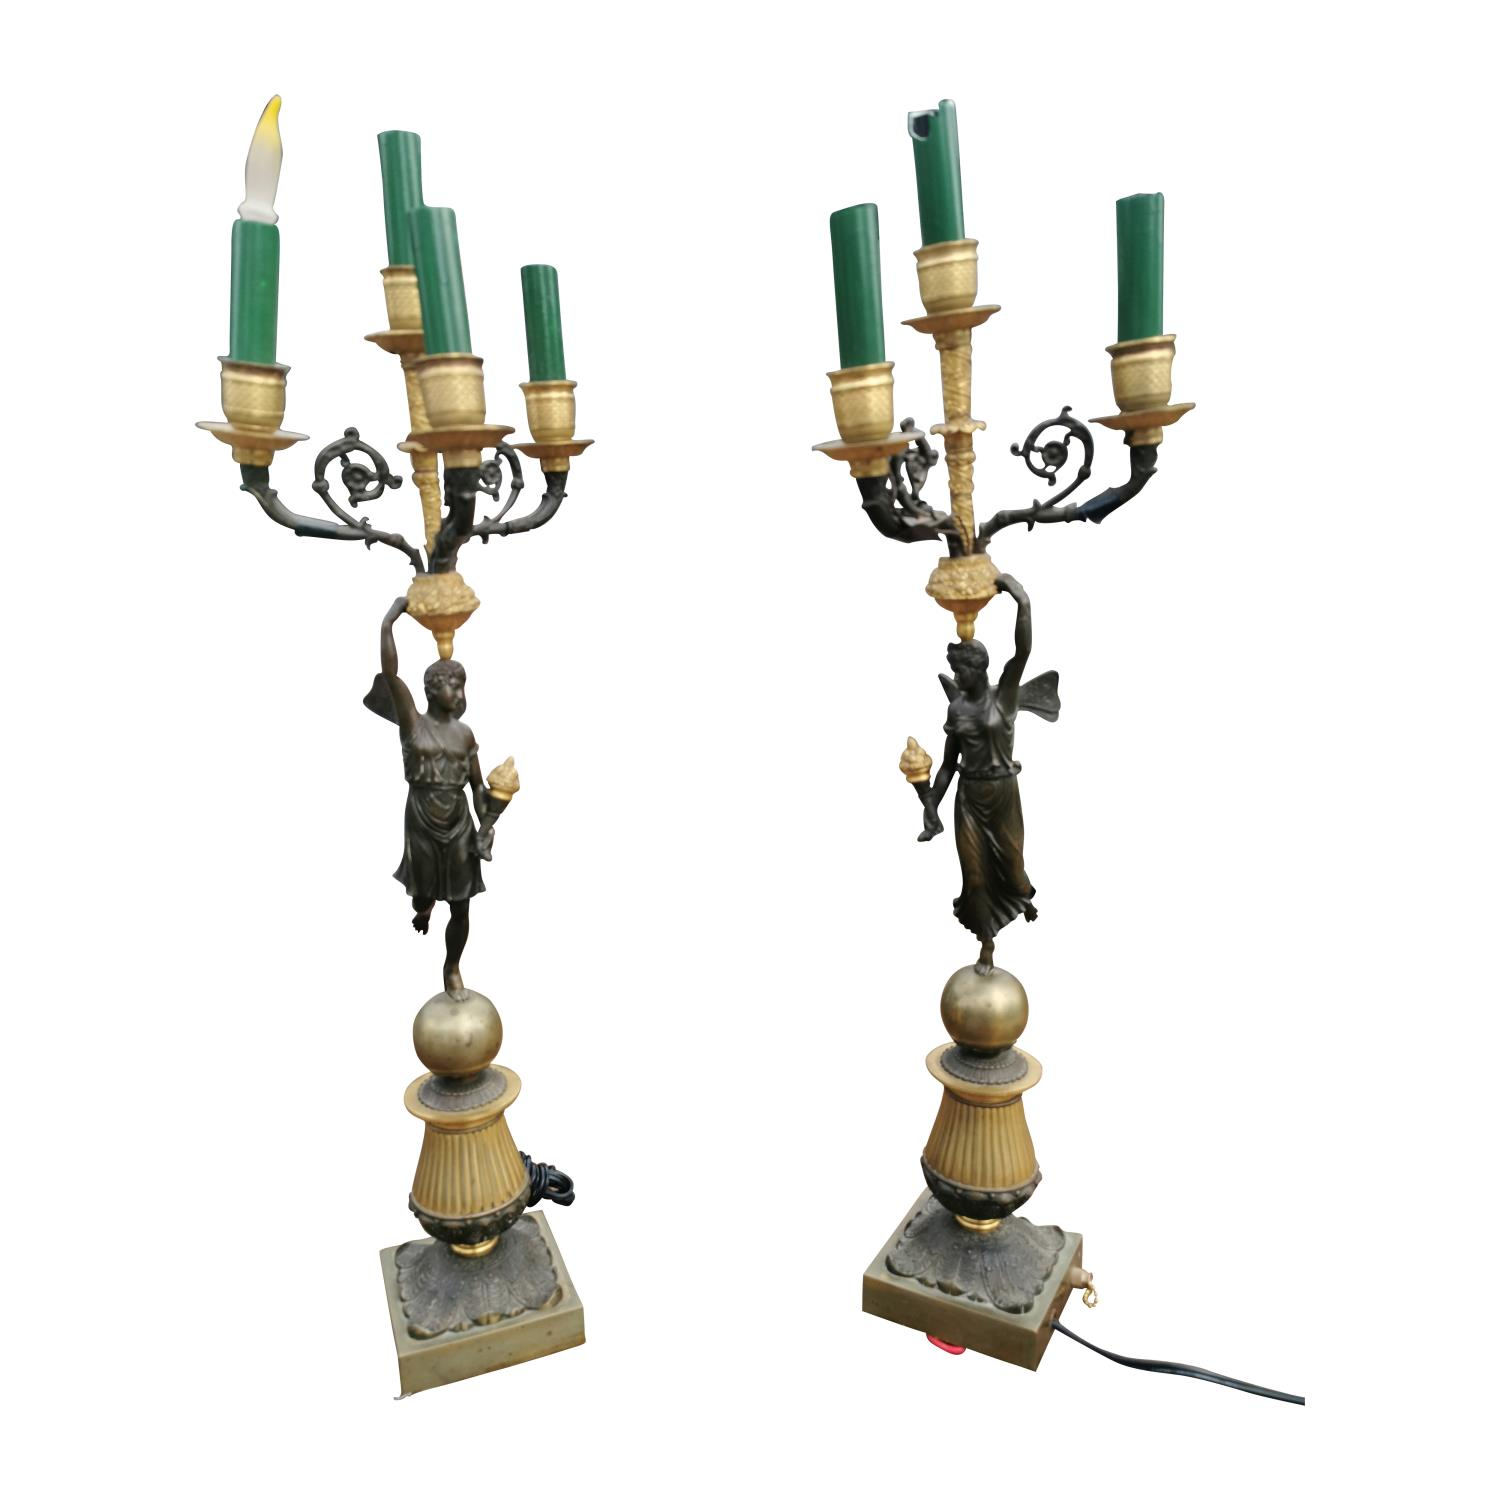 Pair of 19th C. bronze and gilded metal table lamps.